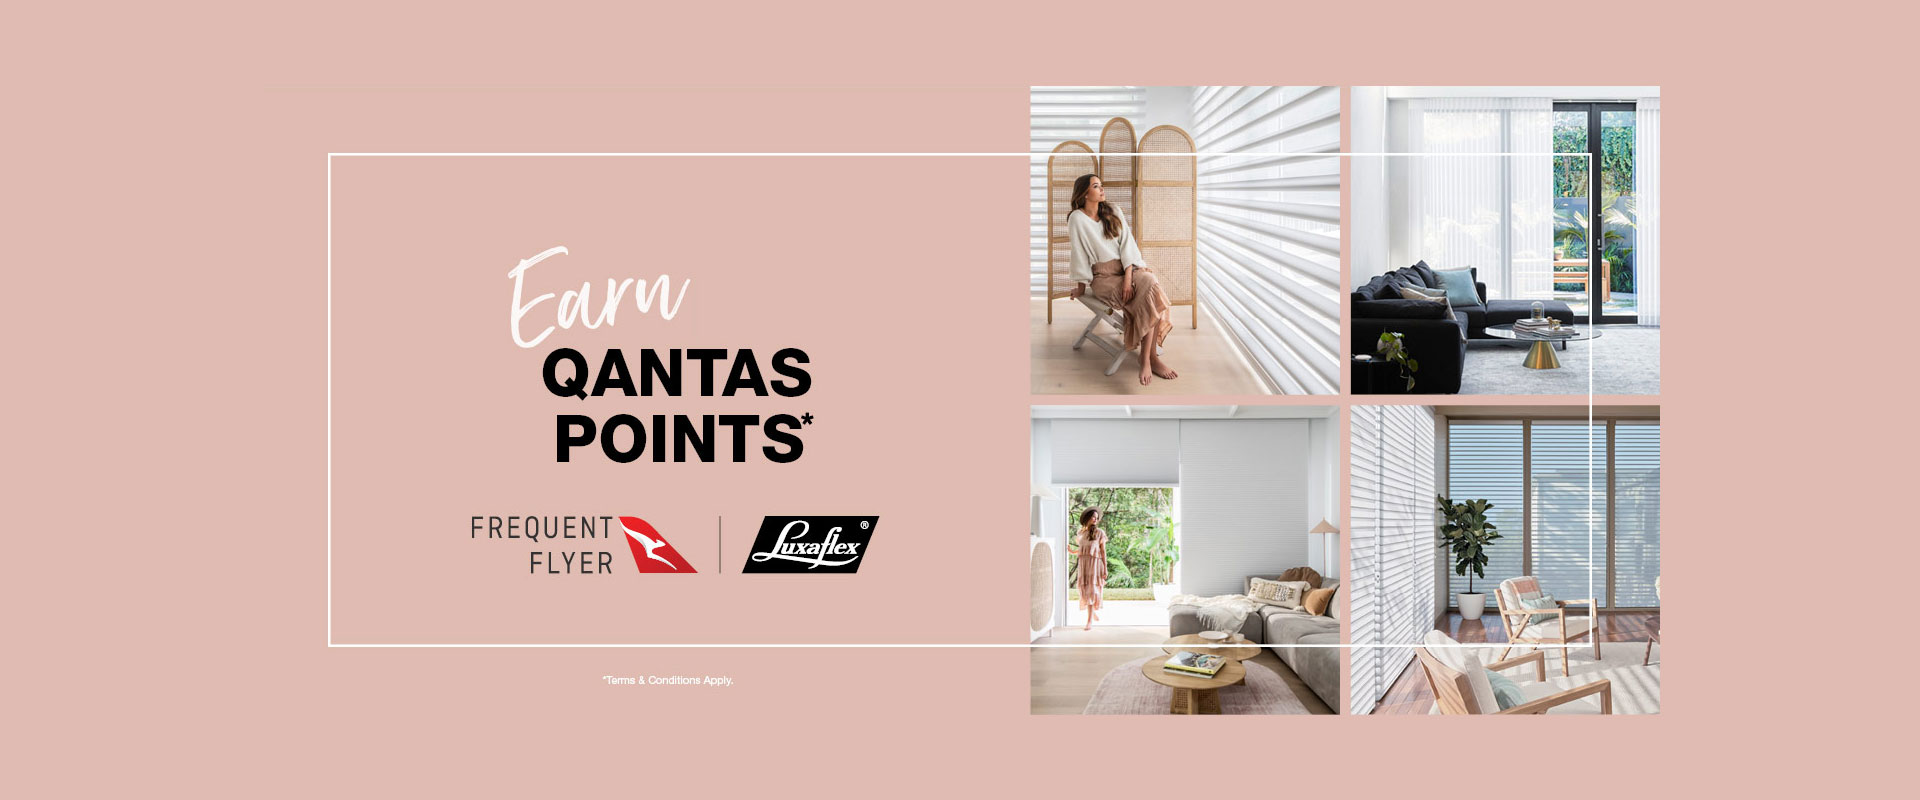 Earn Qantas points with Luxaflex